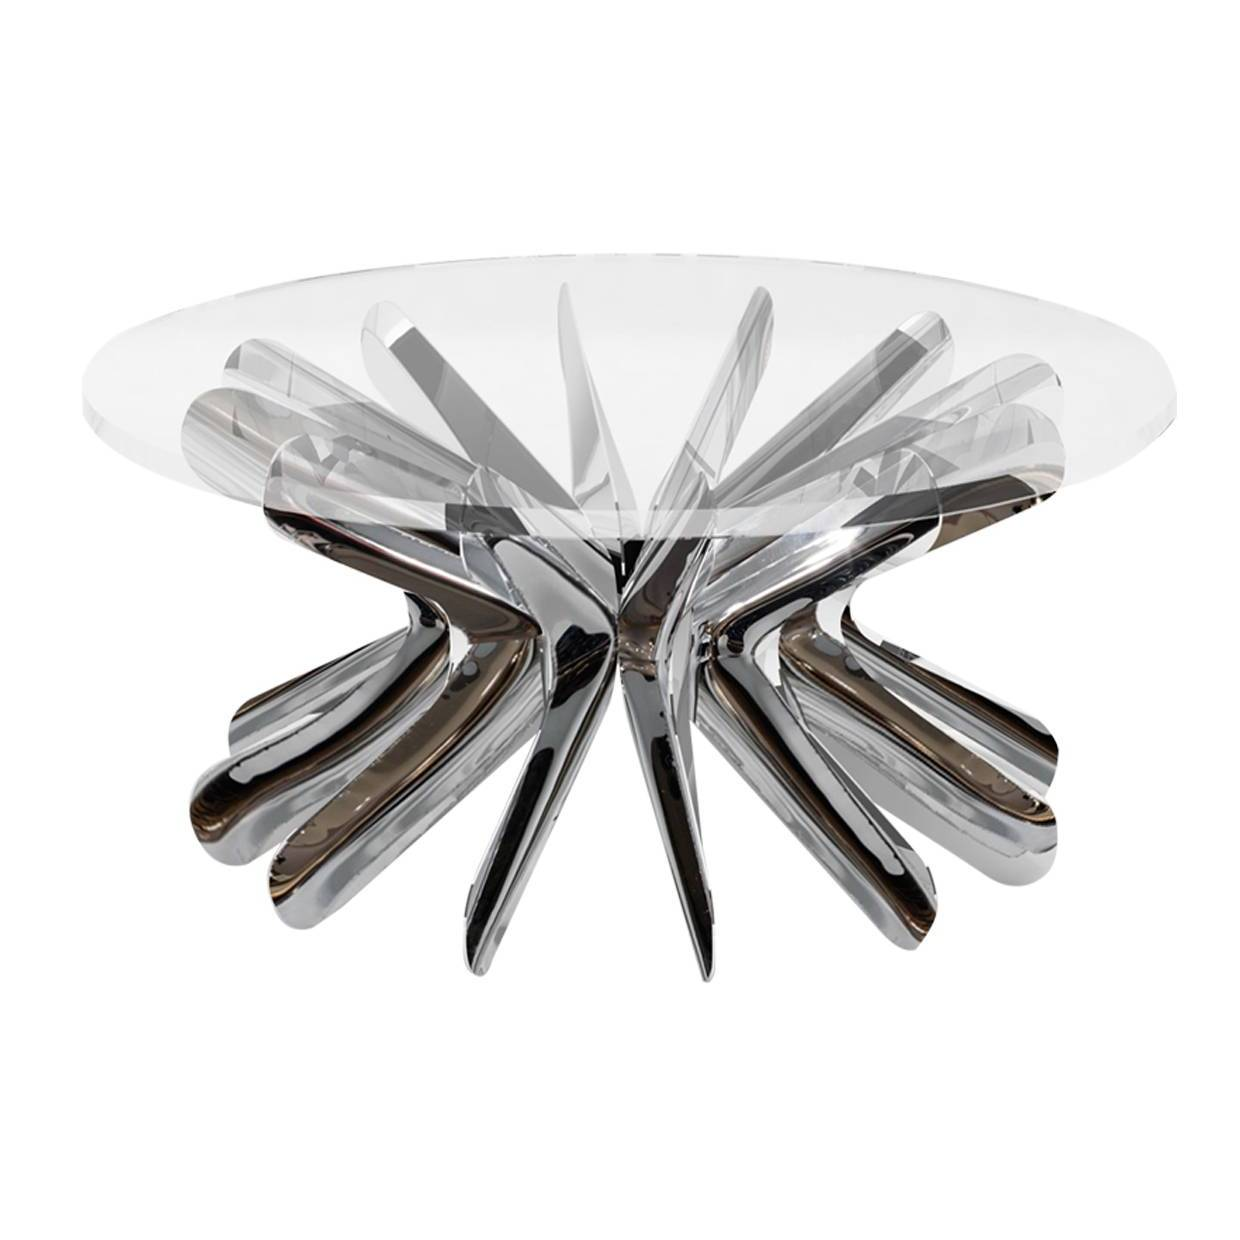 Steel in Rotation Coffee Table: Stainless Steel + Large